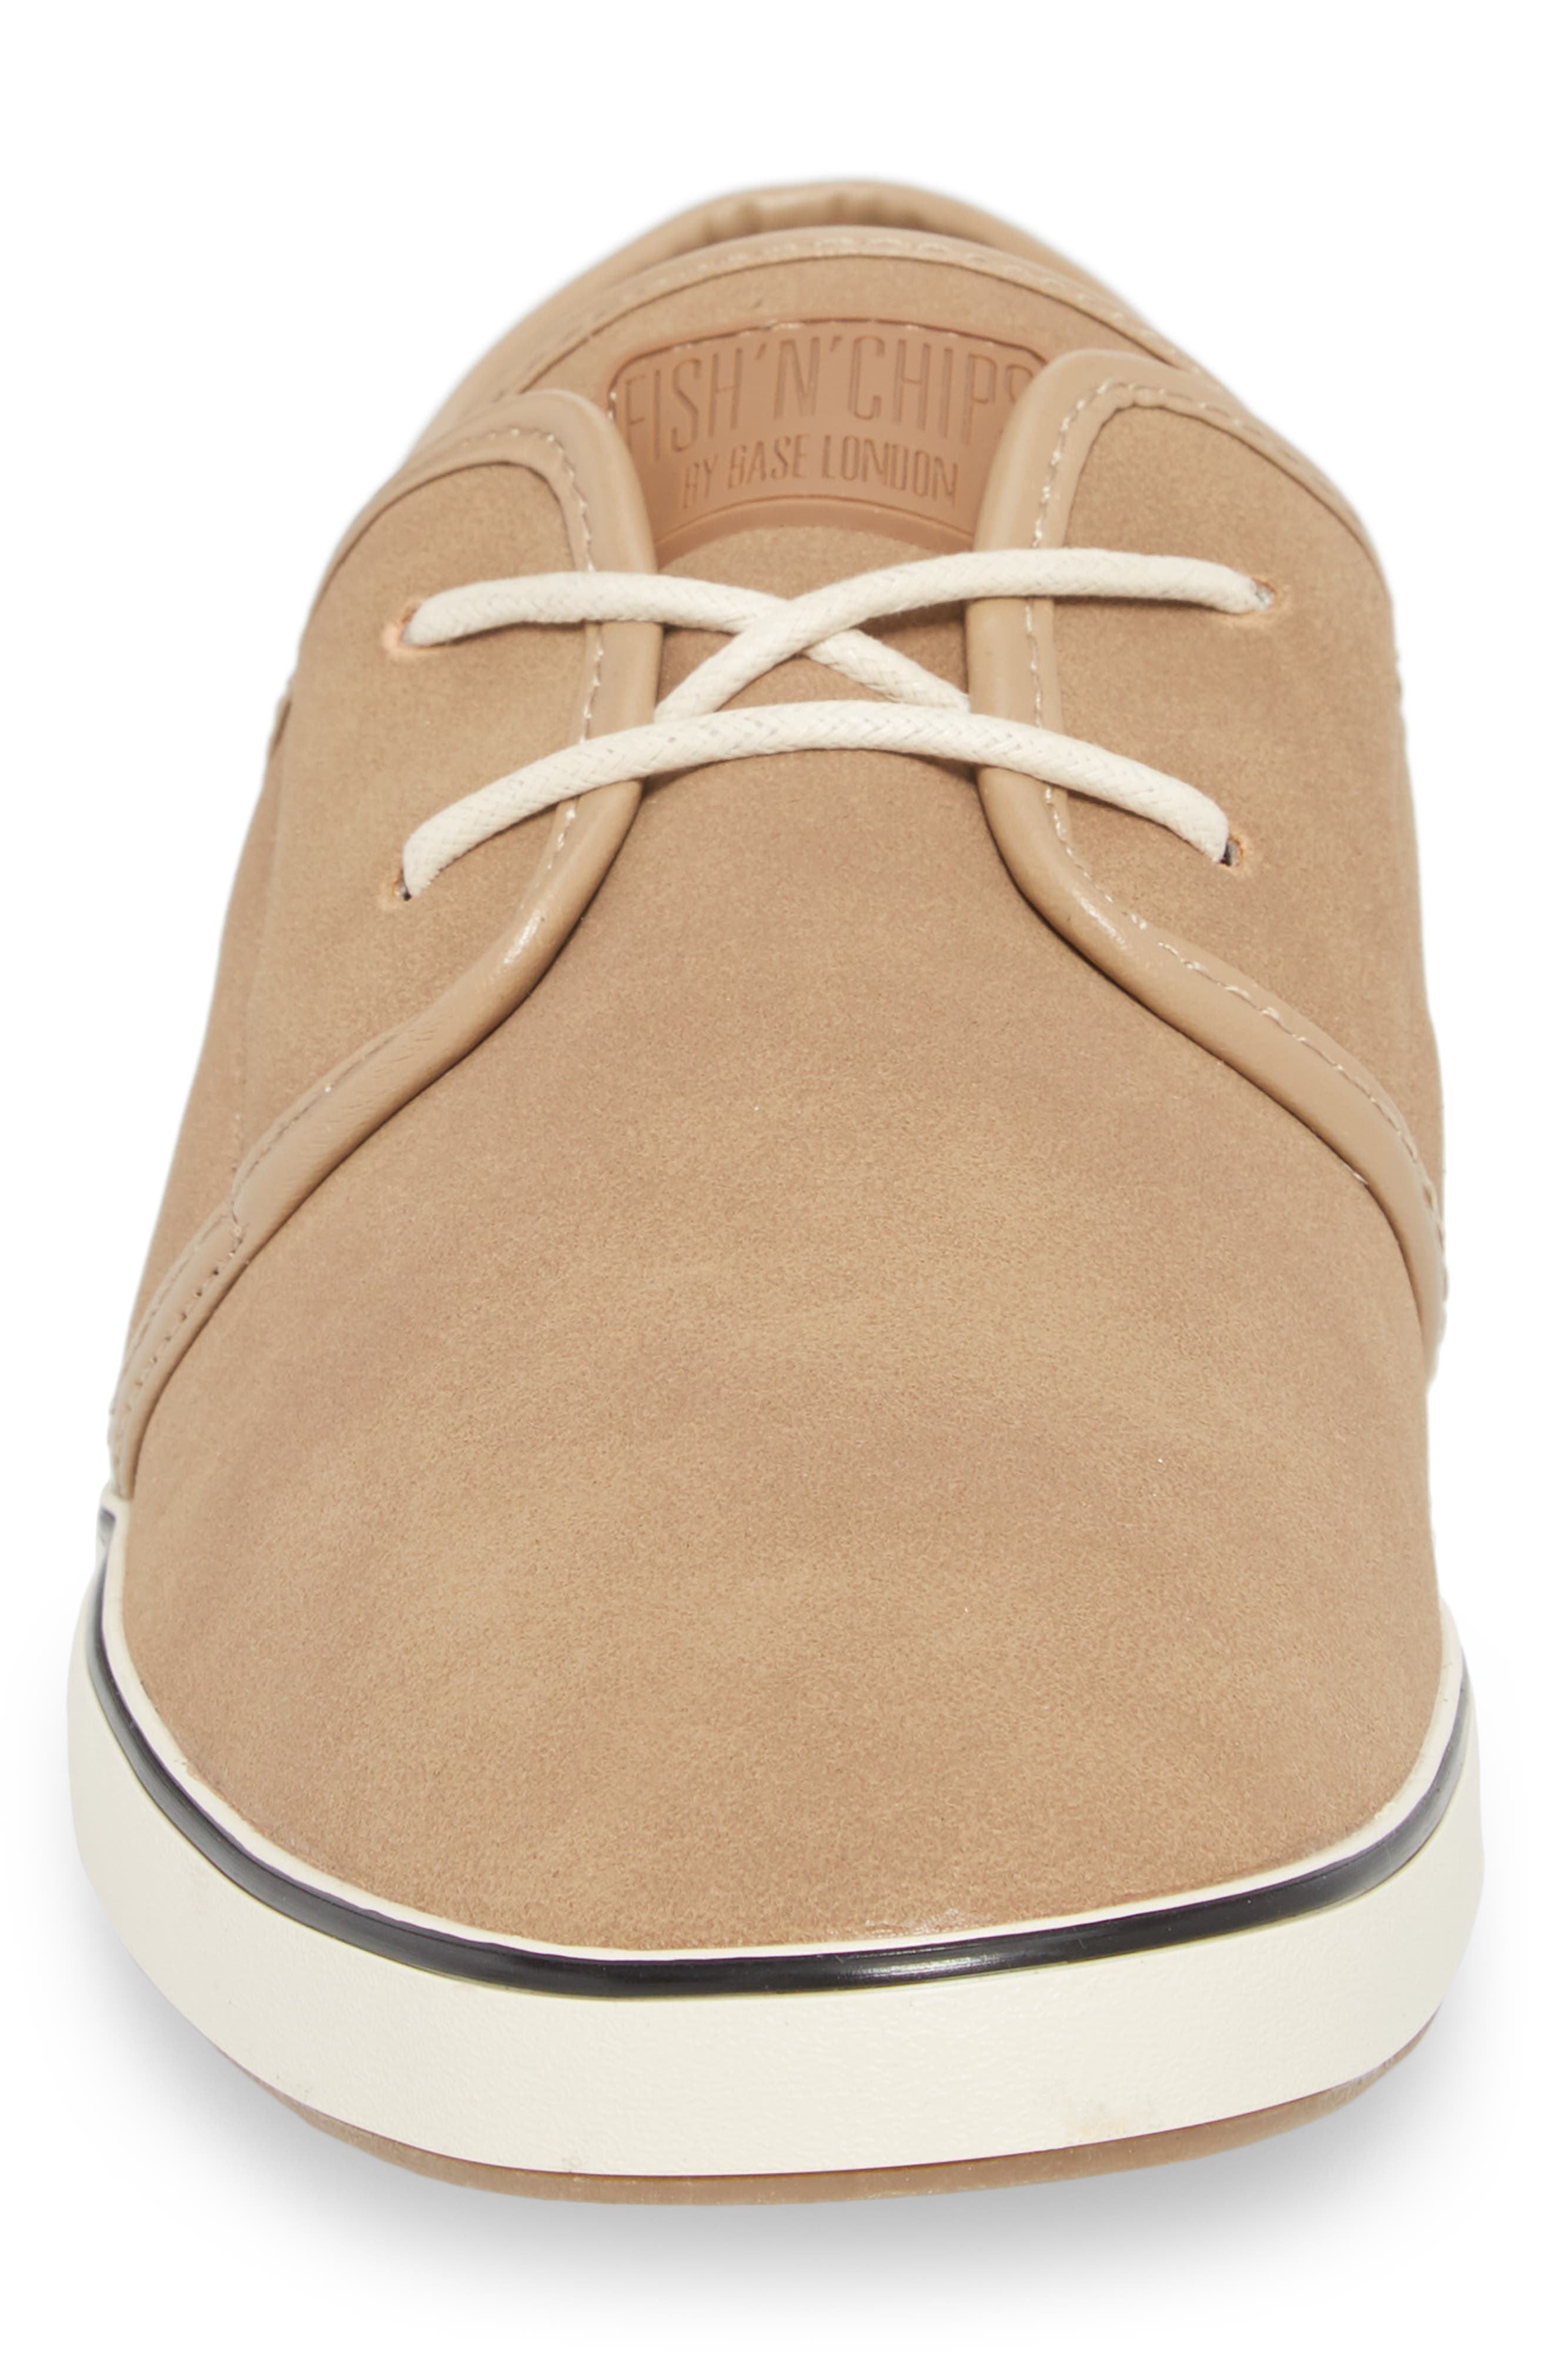 Fish 'N' Chips Surrey Low Top Sneaker,                             Alternate thumbnail 4, color,                             Soft Clay Faux Suede